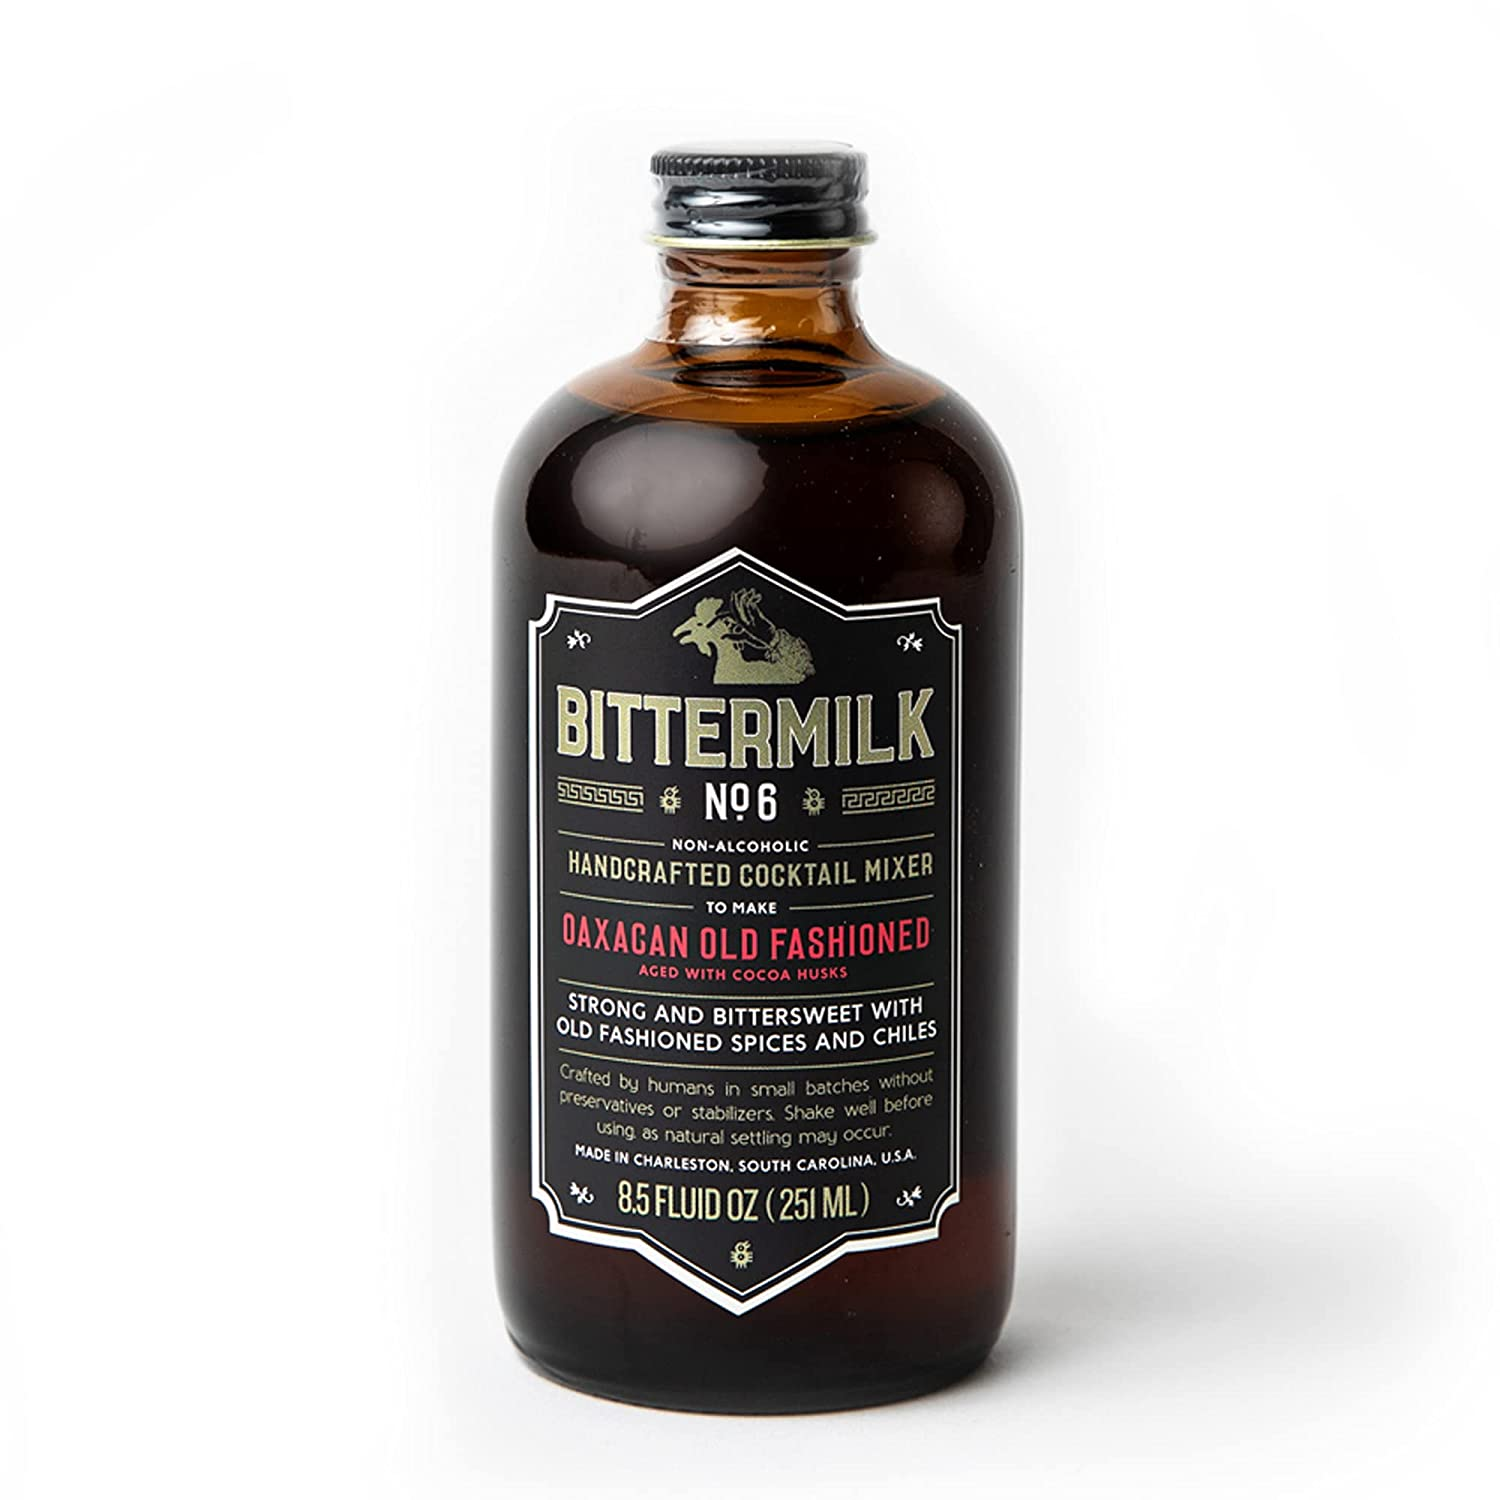 Bittermilk No.6 Oaxacan Old Fashioned – All Natural Handcrafted Cocktail Mixer – Just Add Mezcal or Whiskey, Makes 17 Cocktails